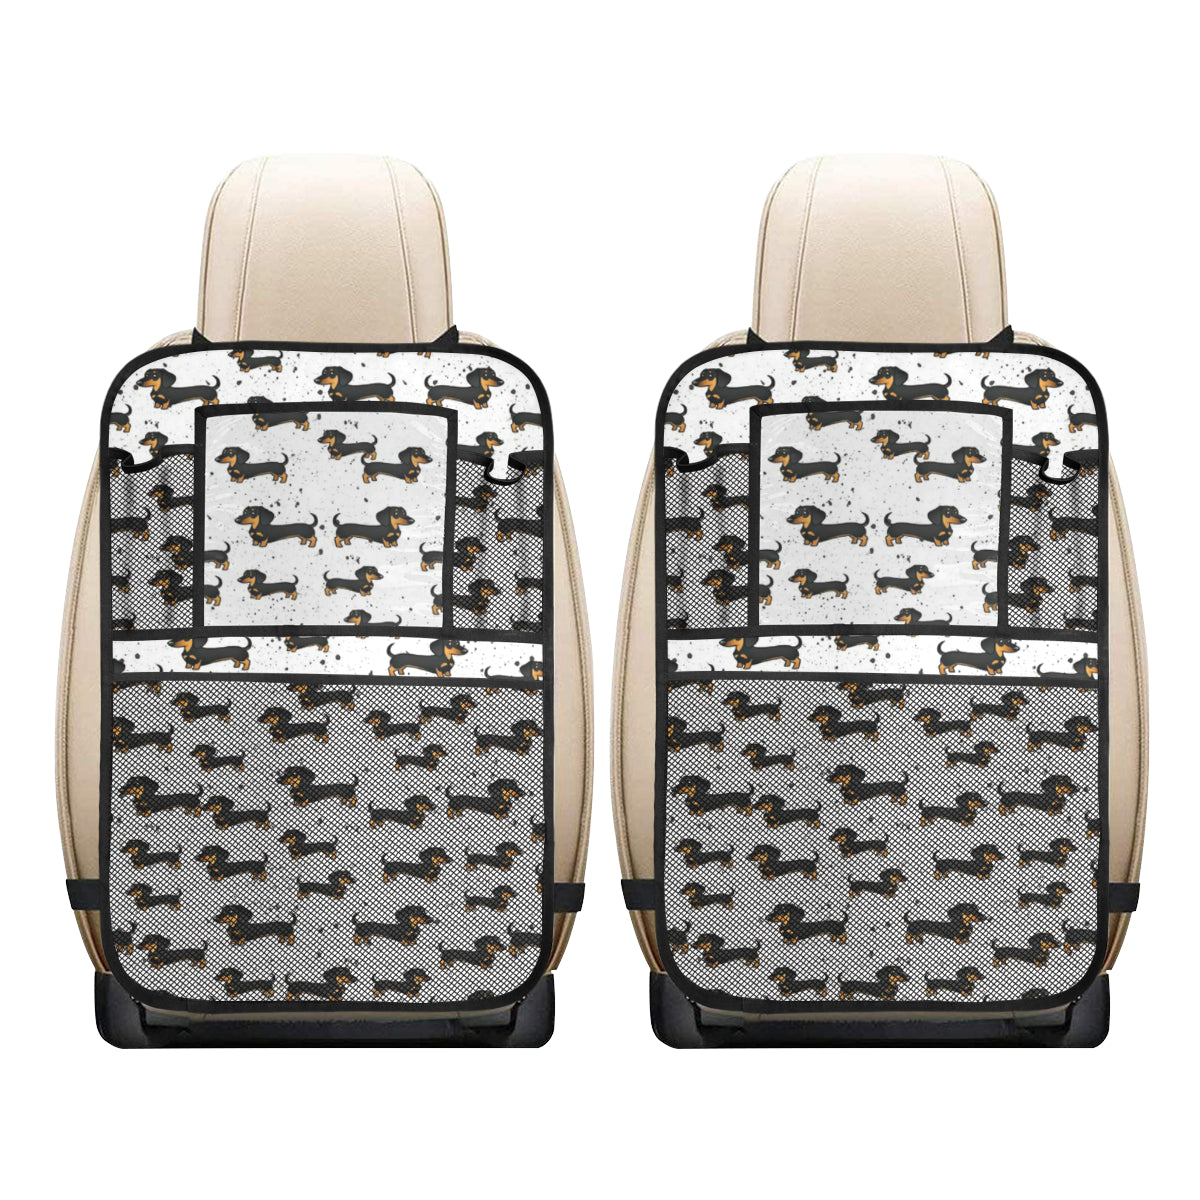 Dachshund Car Seat Back Organizer - (2 Pack)